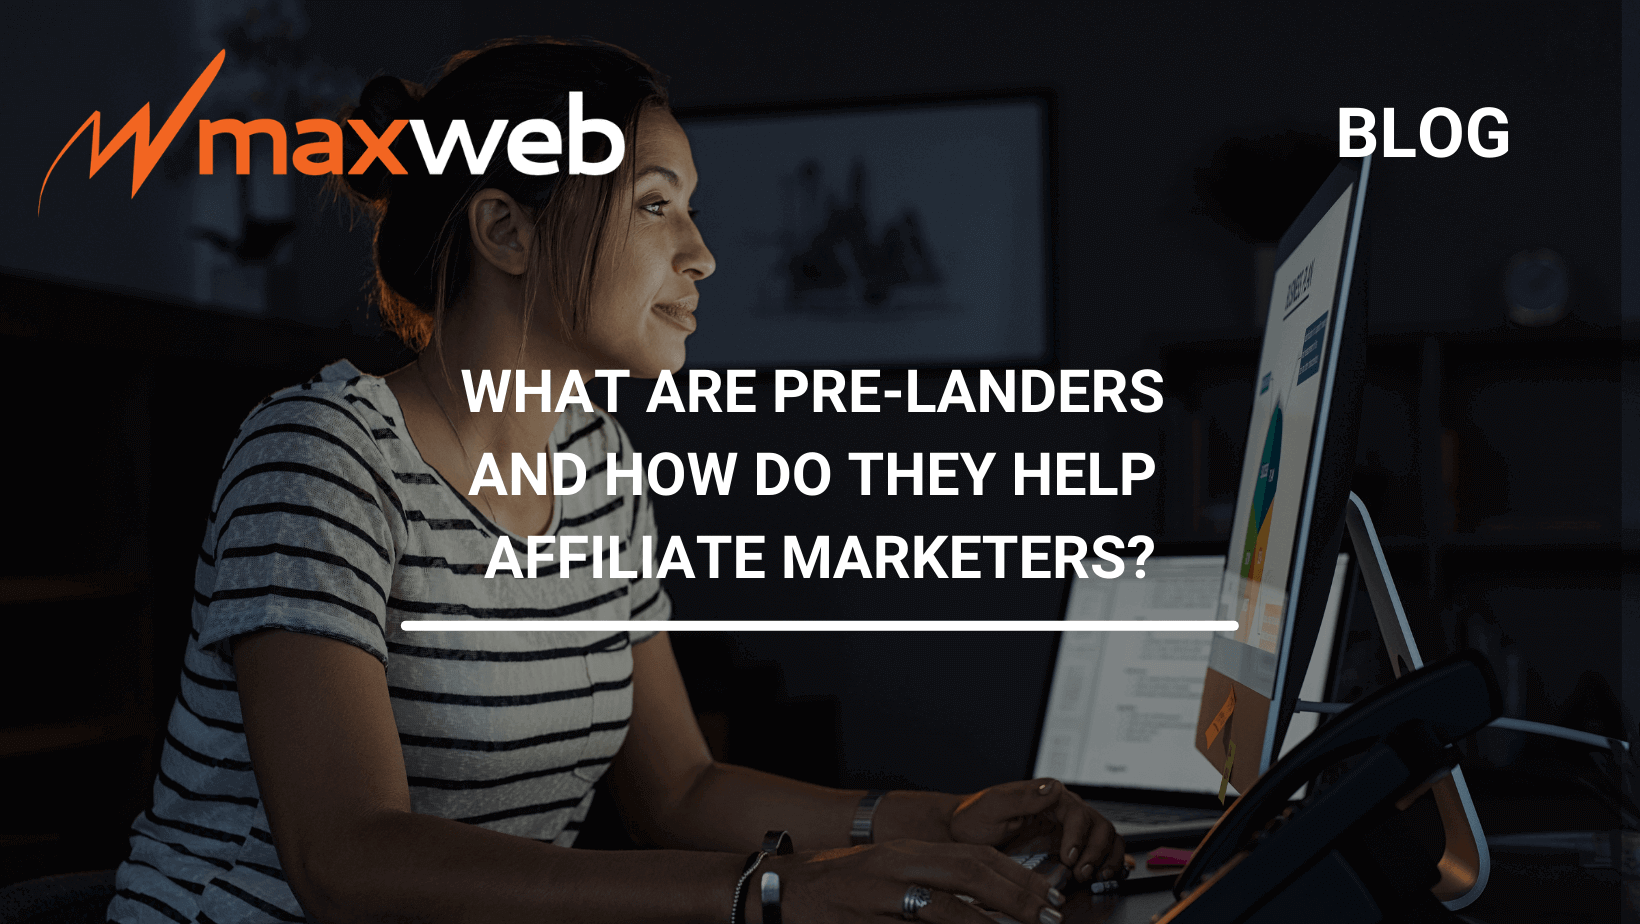 What Are Pre-Landers And Why They Help Increase Conversions For Marketers